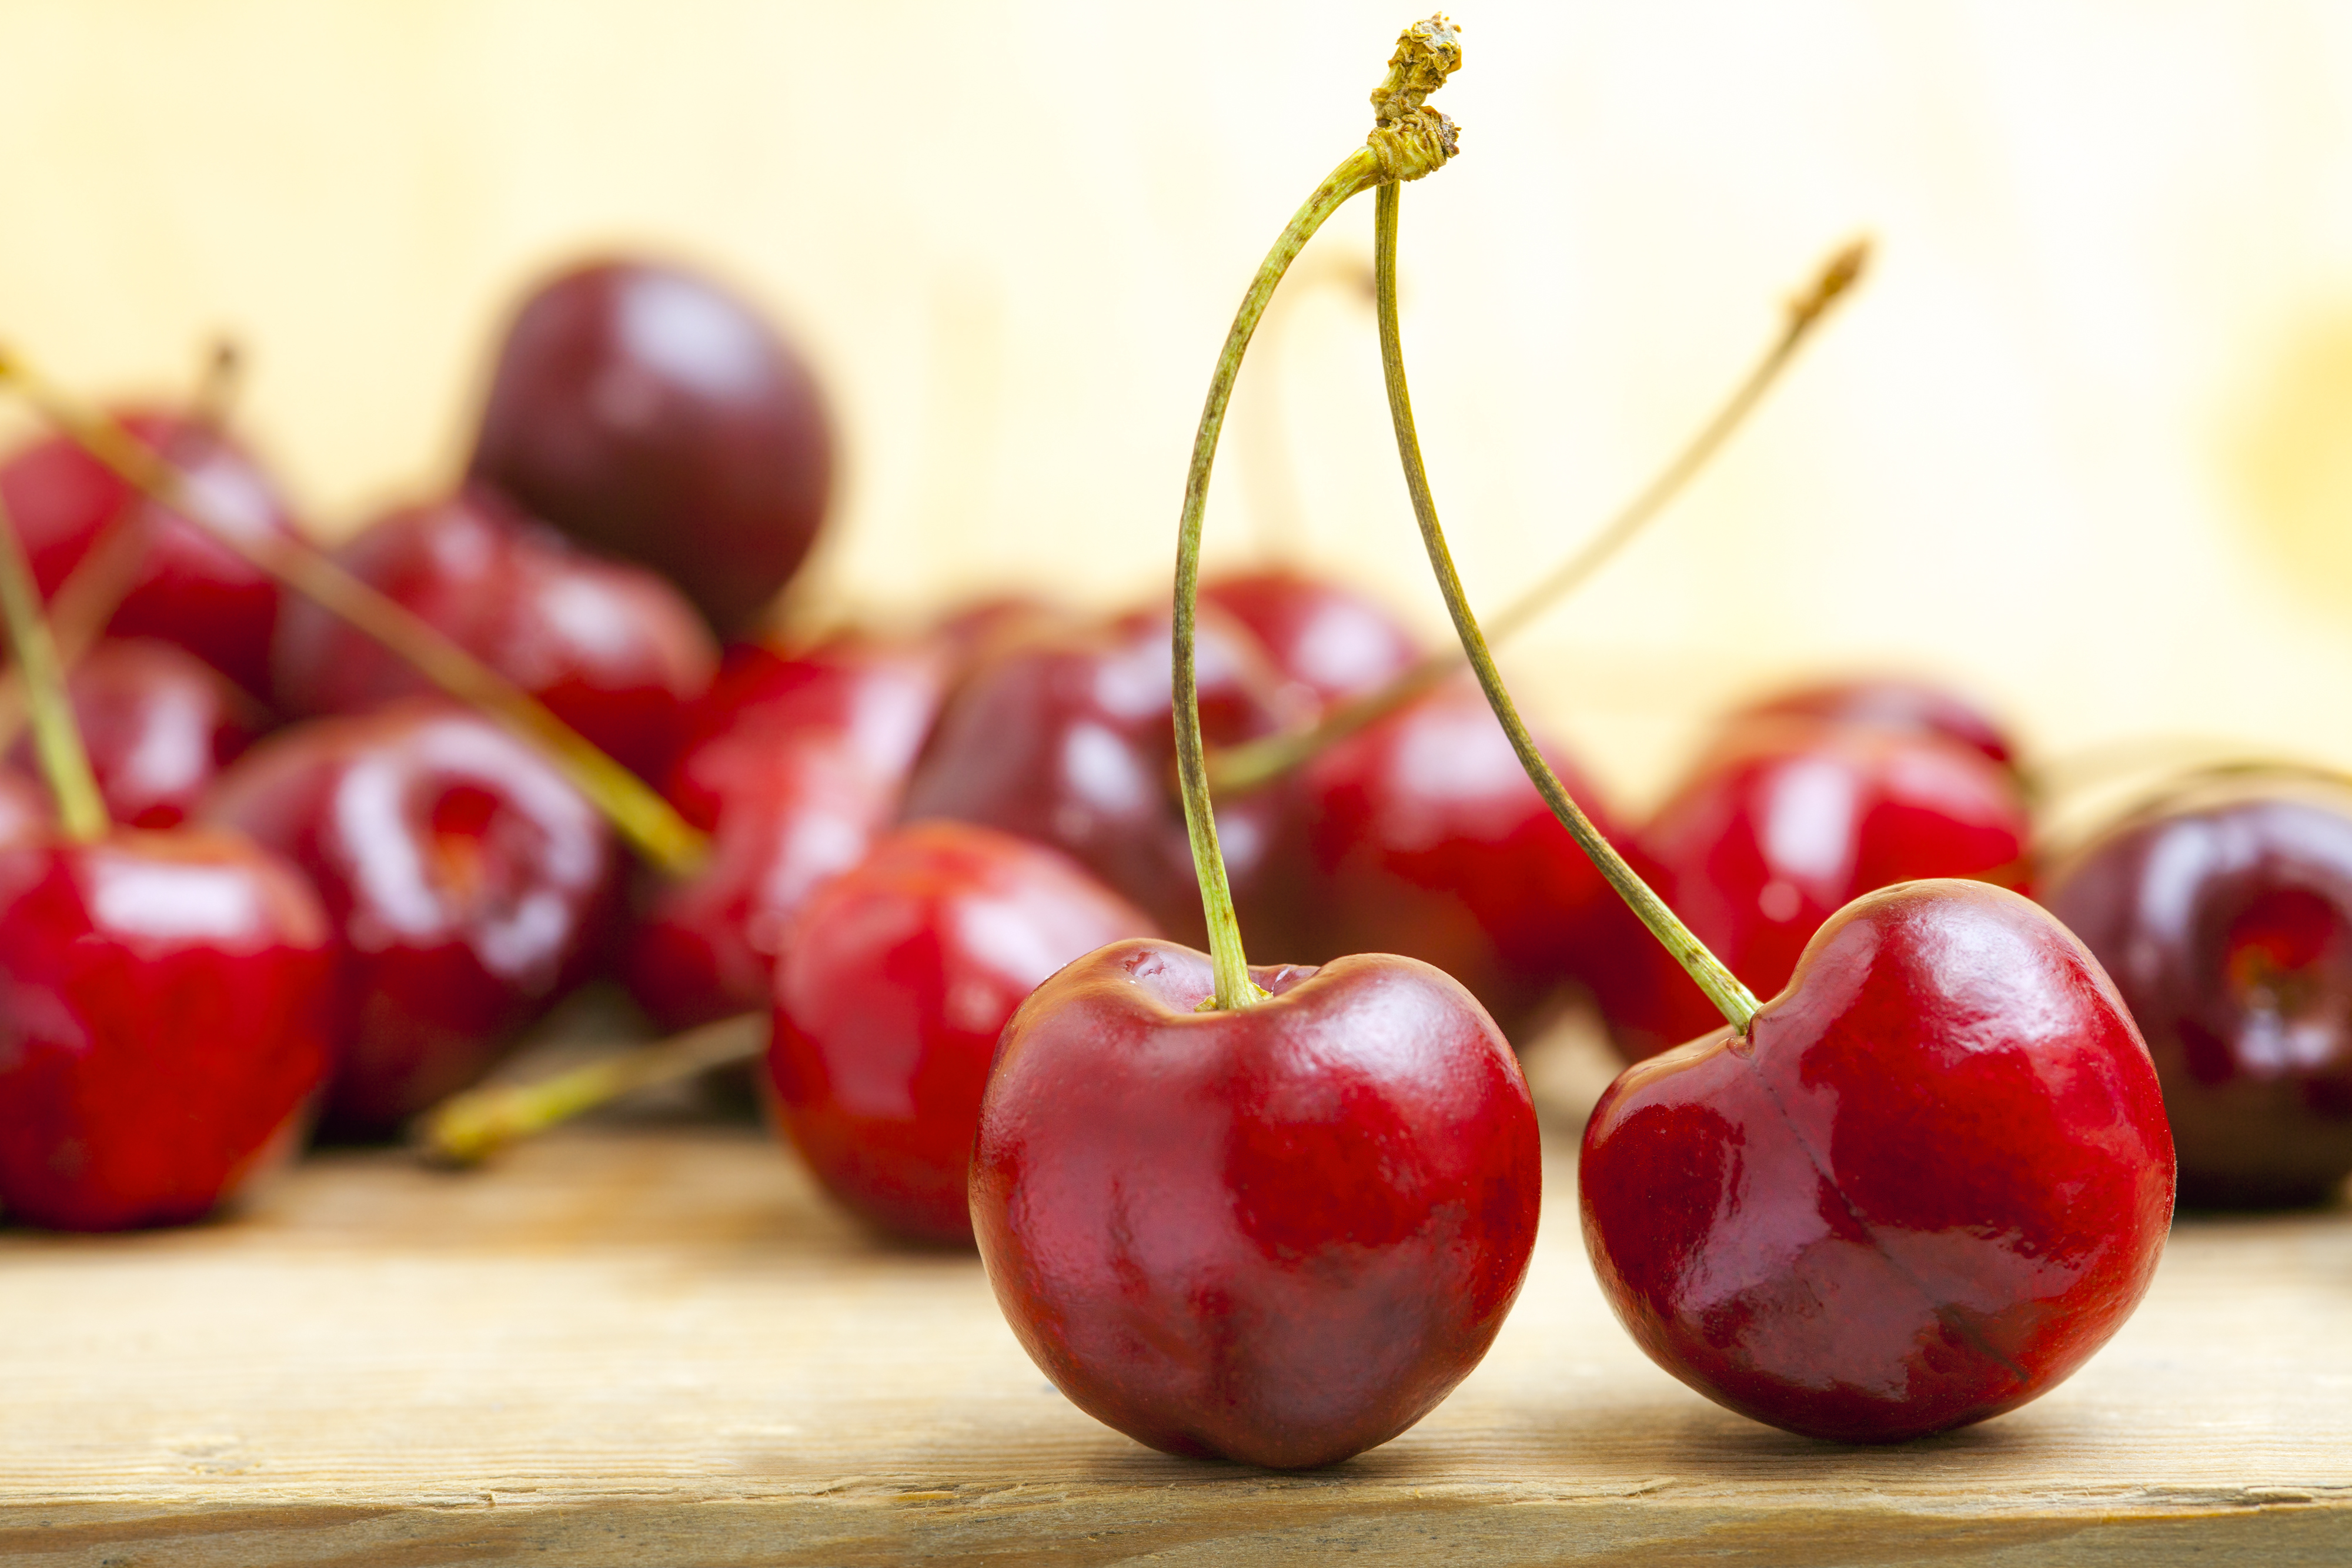 Cherry Wallpapers High Quality